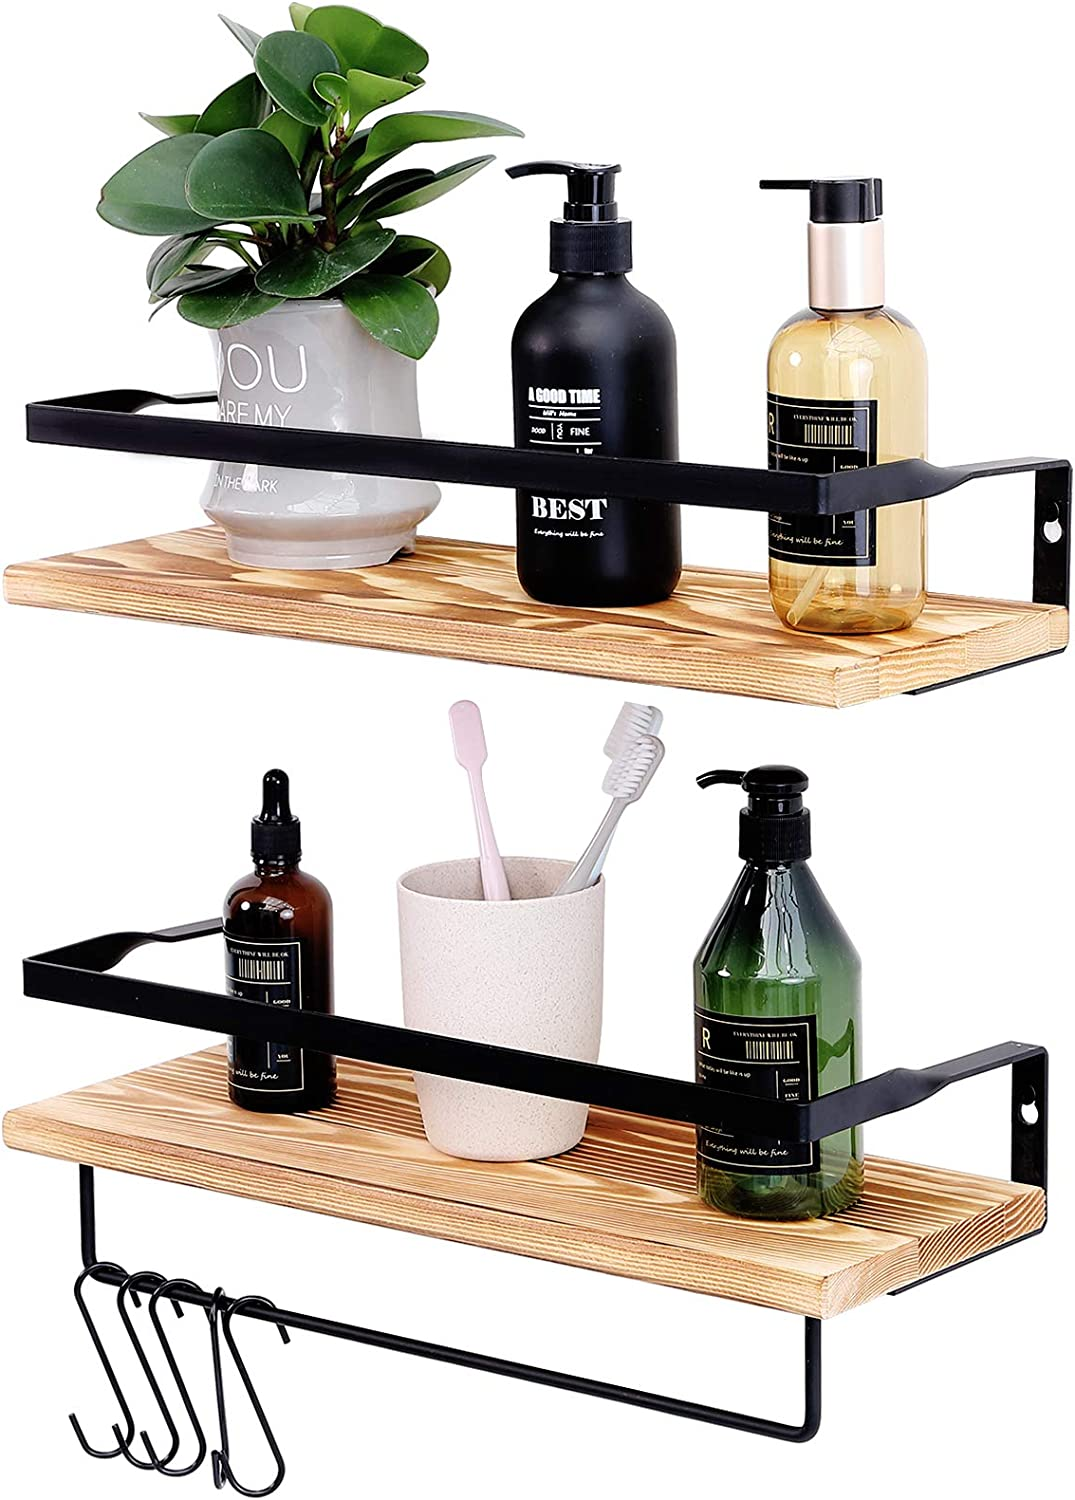 Floating Shelves Wall Mounted, Wall Storage Shelves with Towel Bar and 5 Removable Hooks for Kitchen, Bathroom, Gift for Mom, Set of 2 (Wooden)